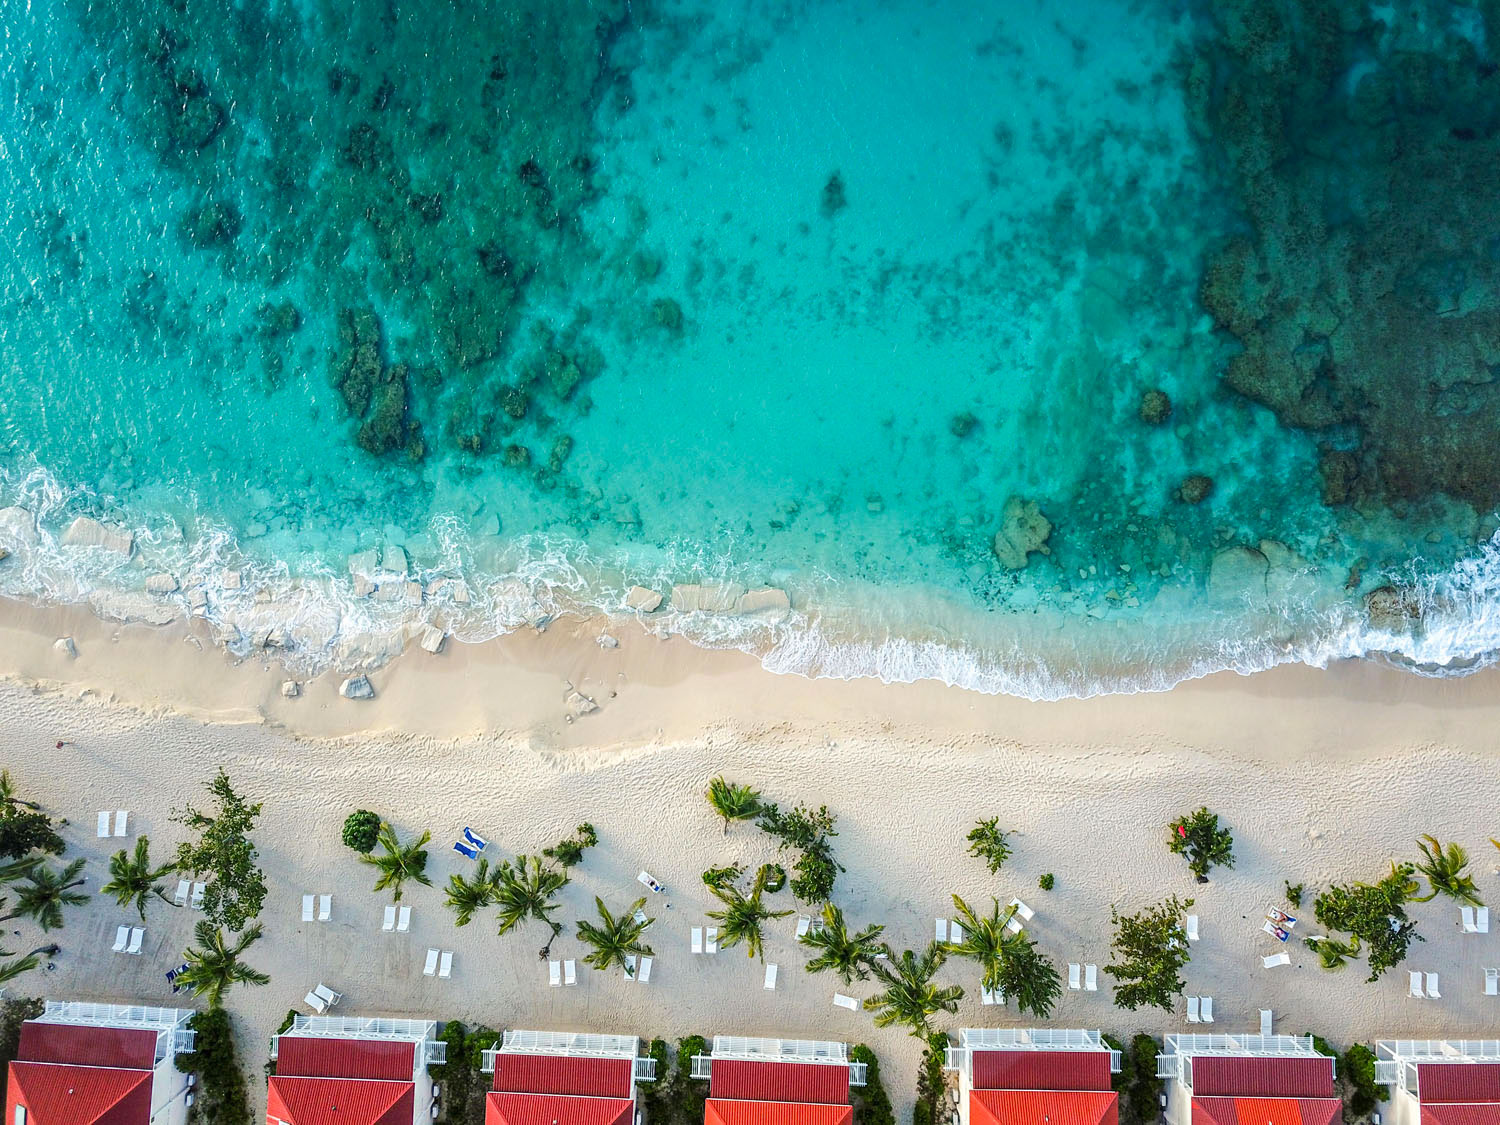 Imagine an island with a reputed 364 more beaches like this one . . . Photo by DBImages/Alamy Stock Photo